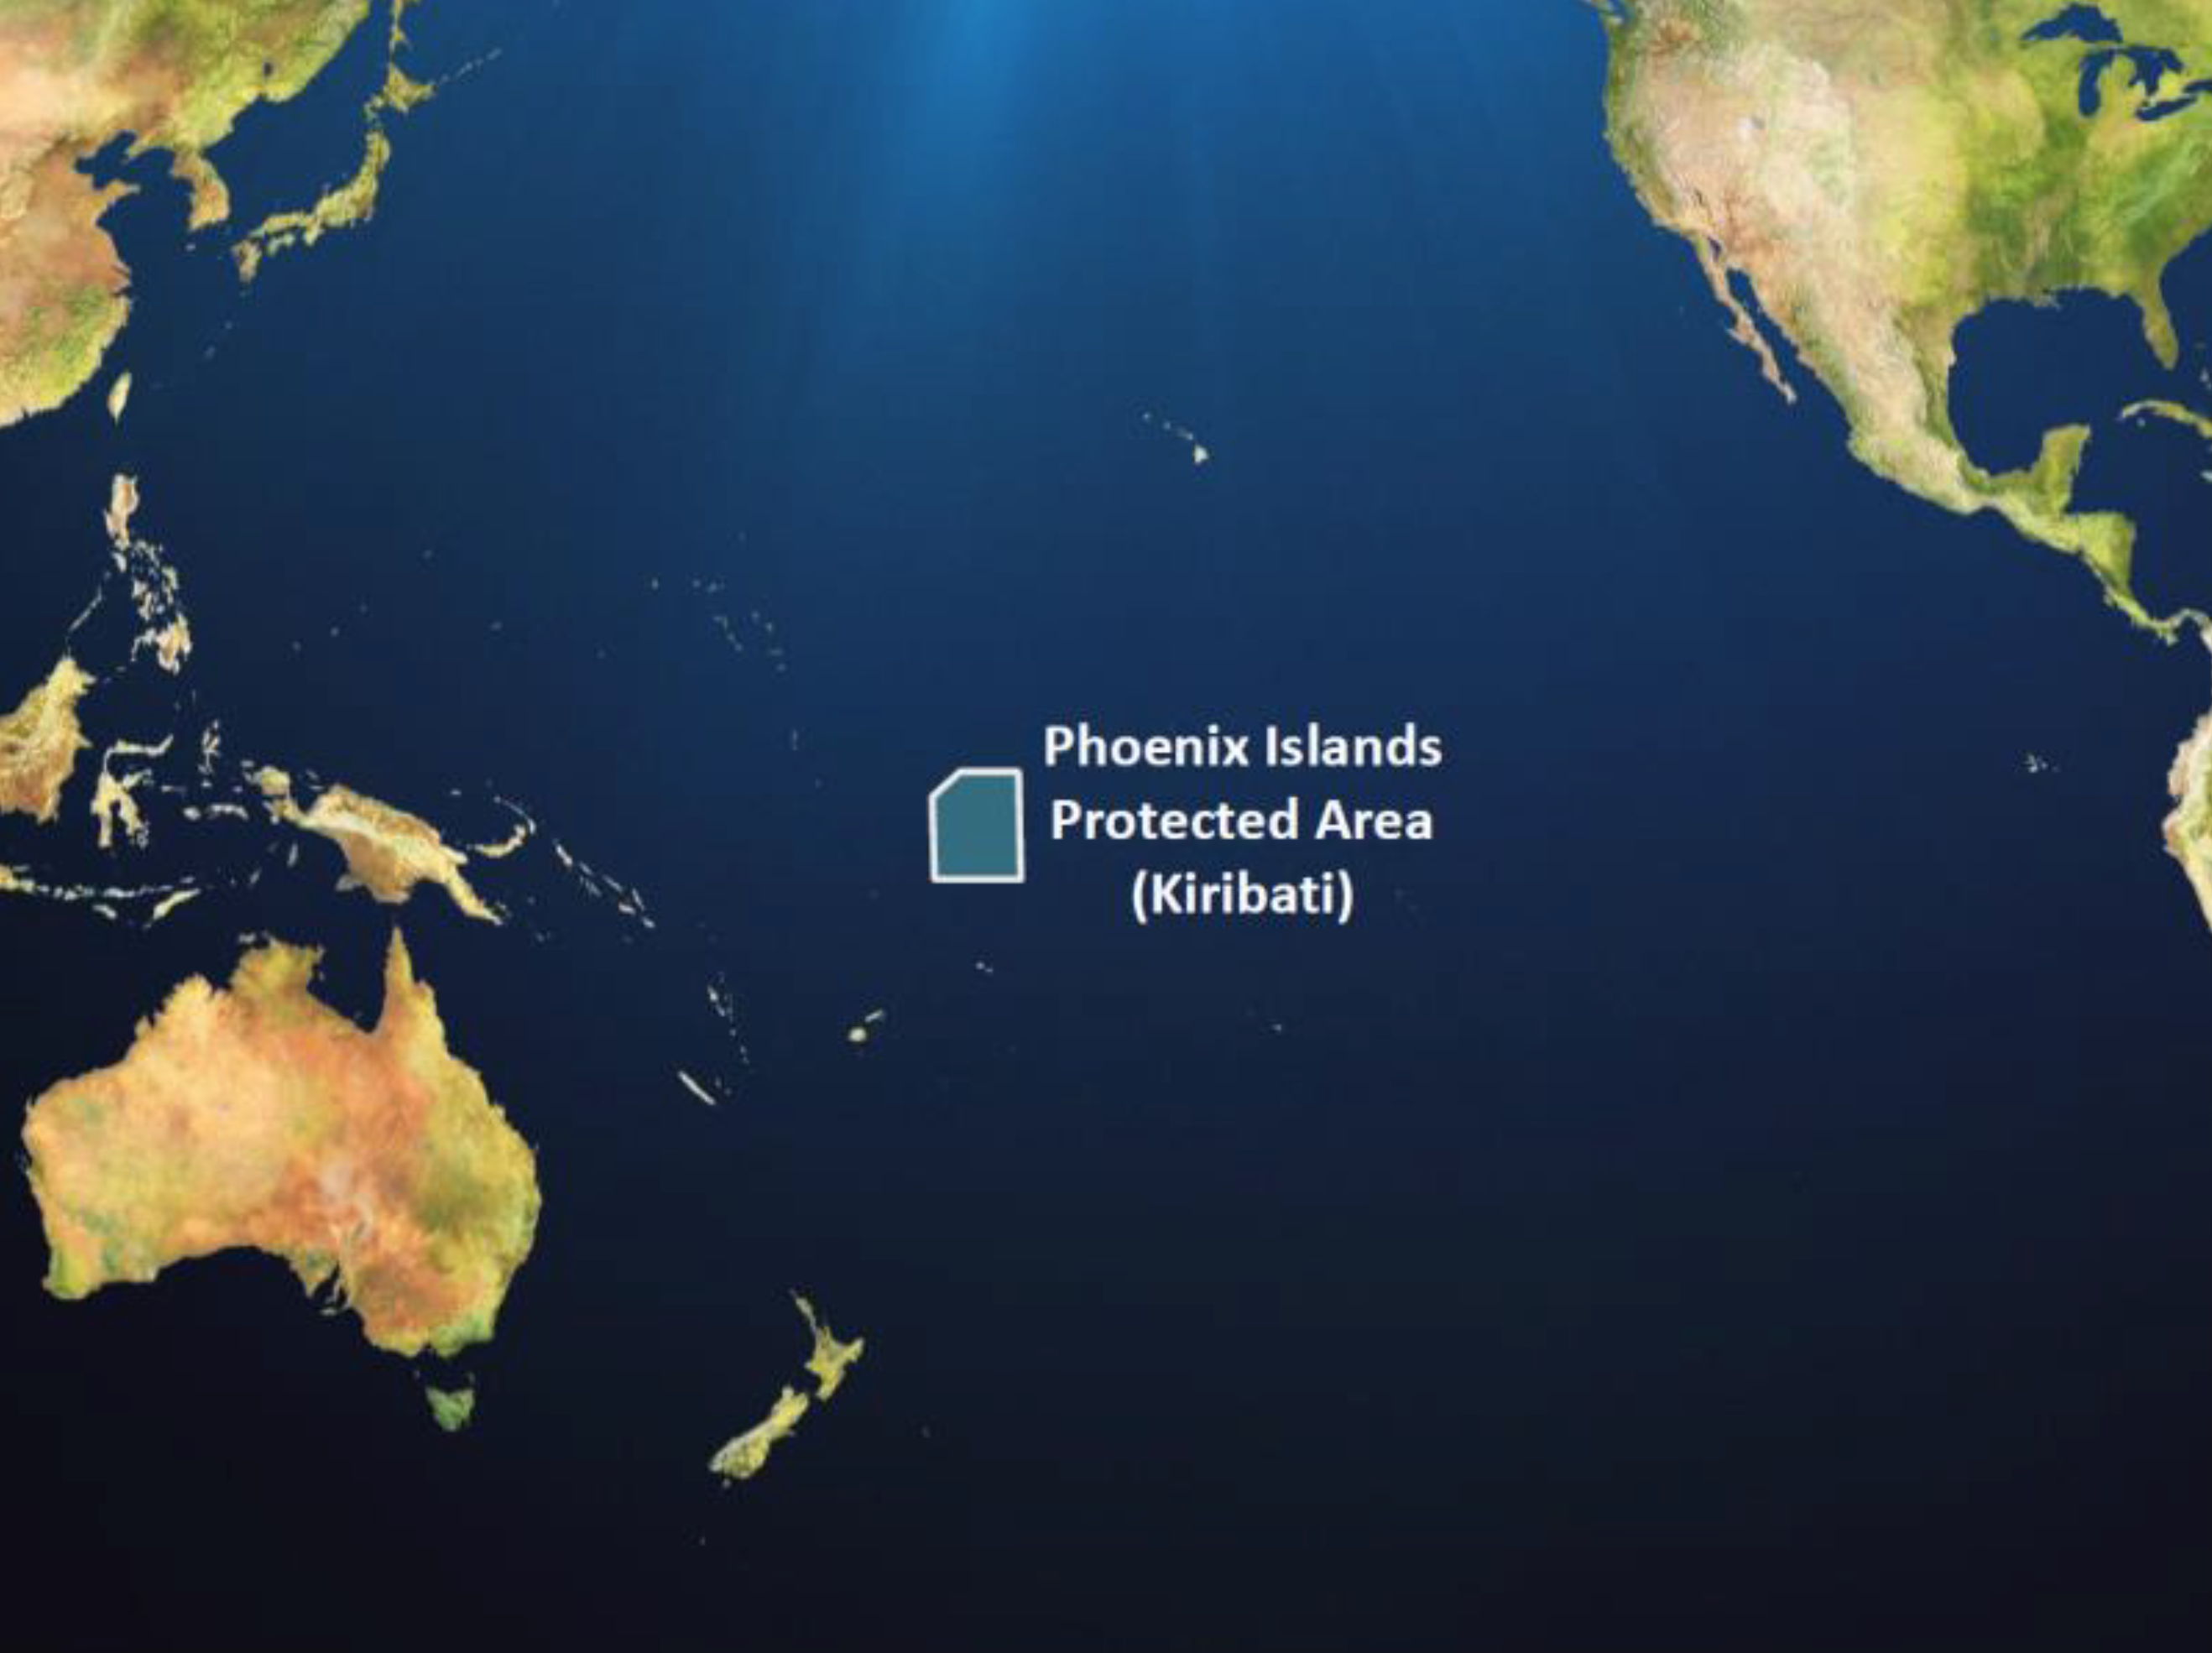 The location of the Phoenix Islands Marine Protected Area